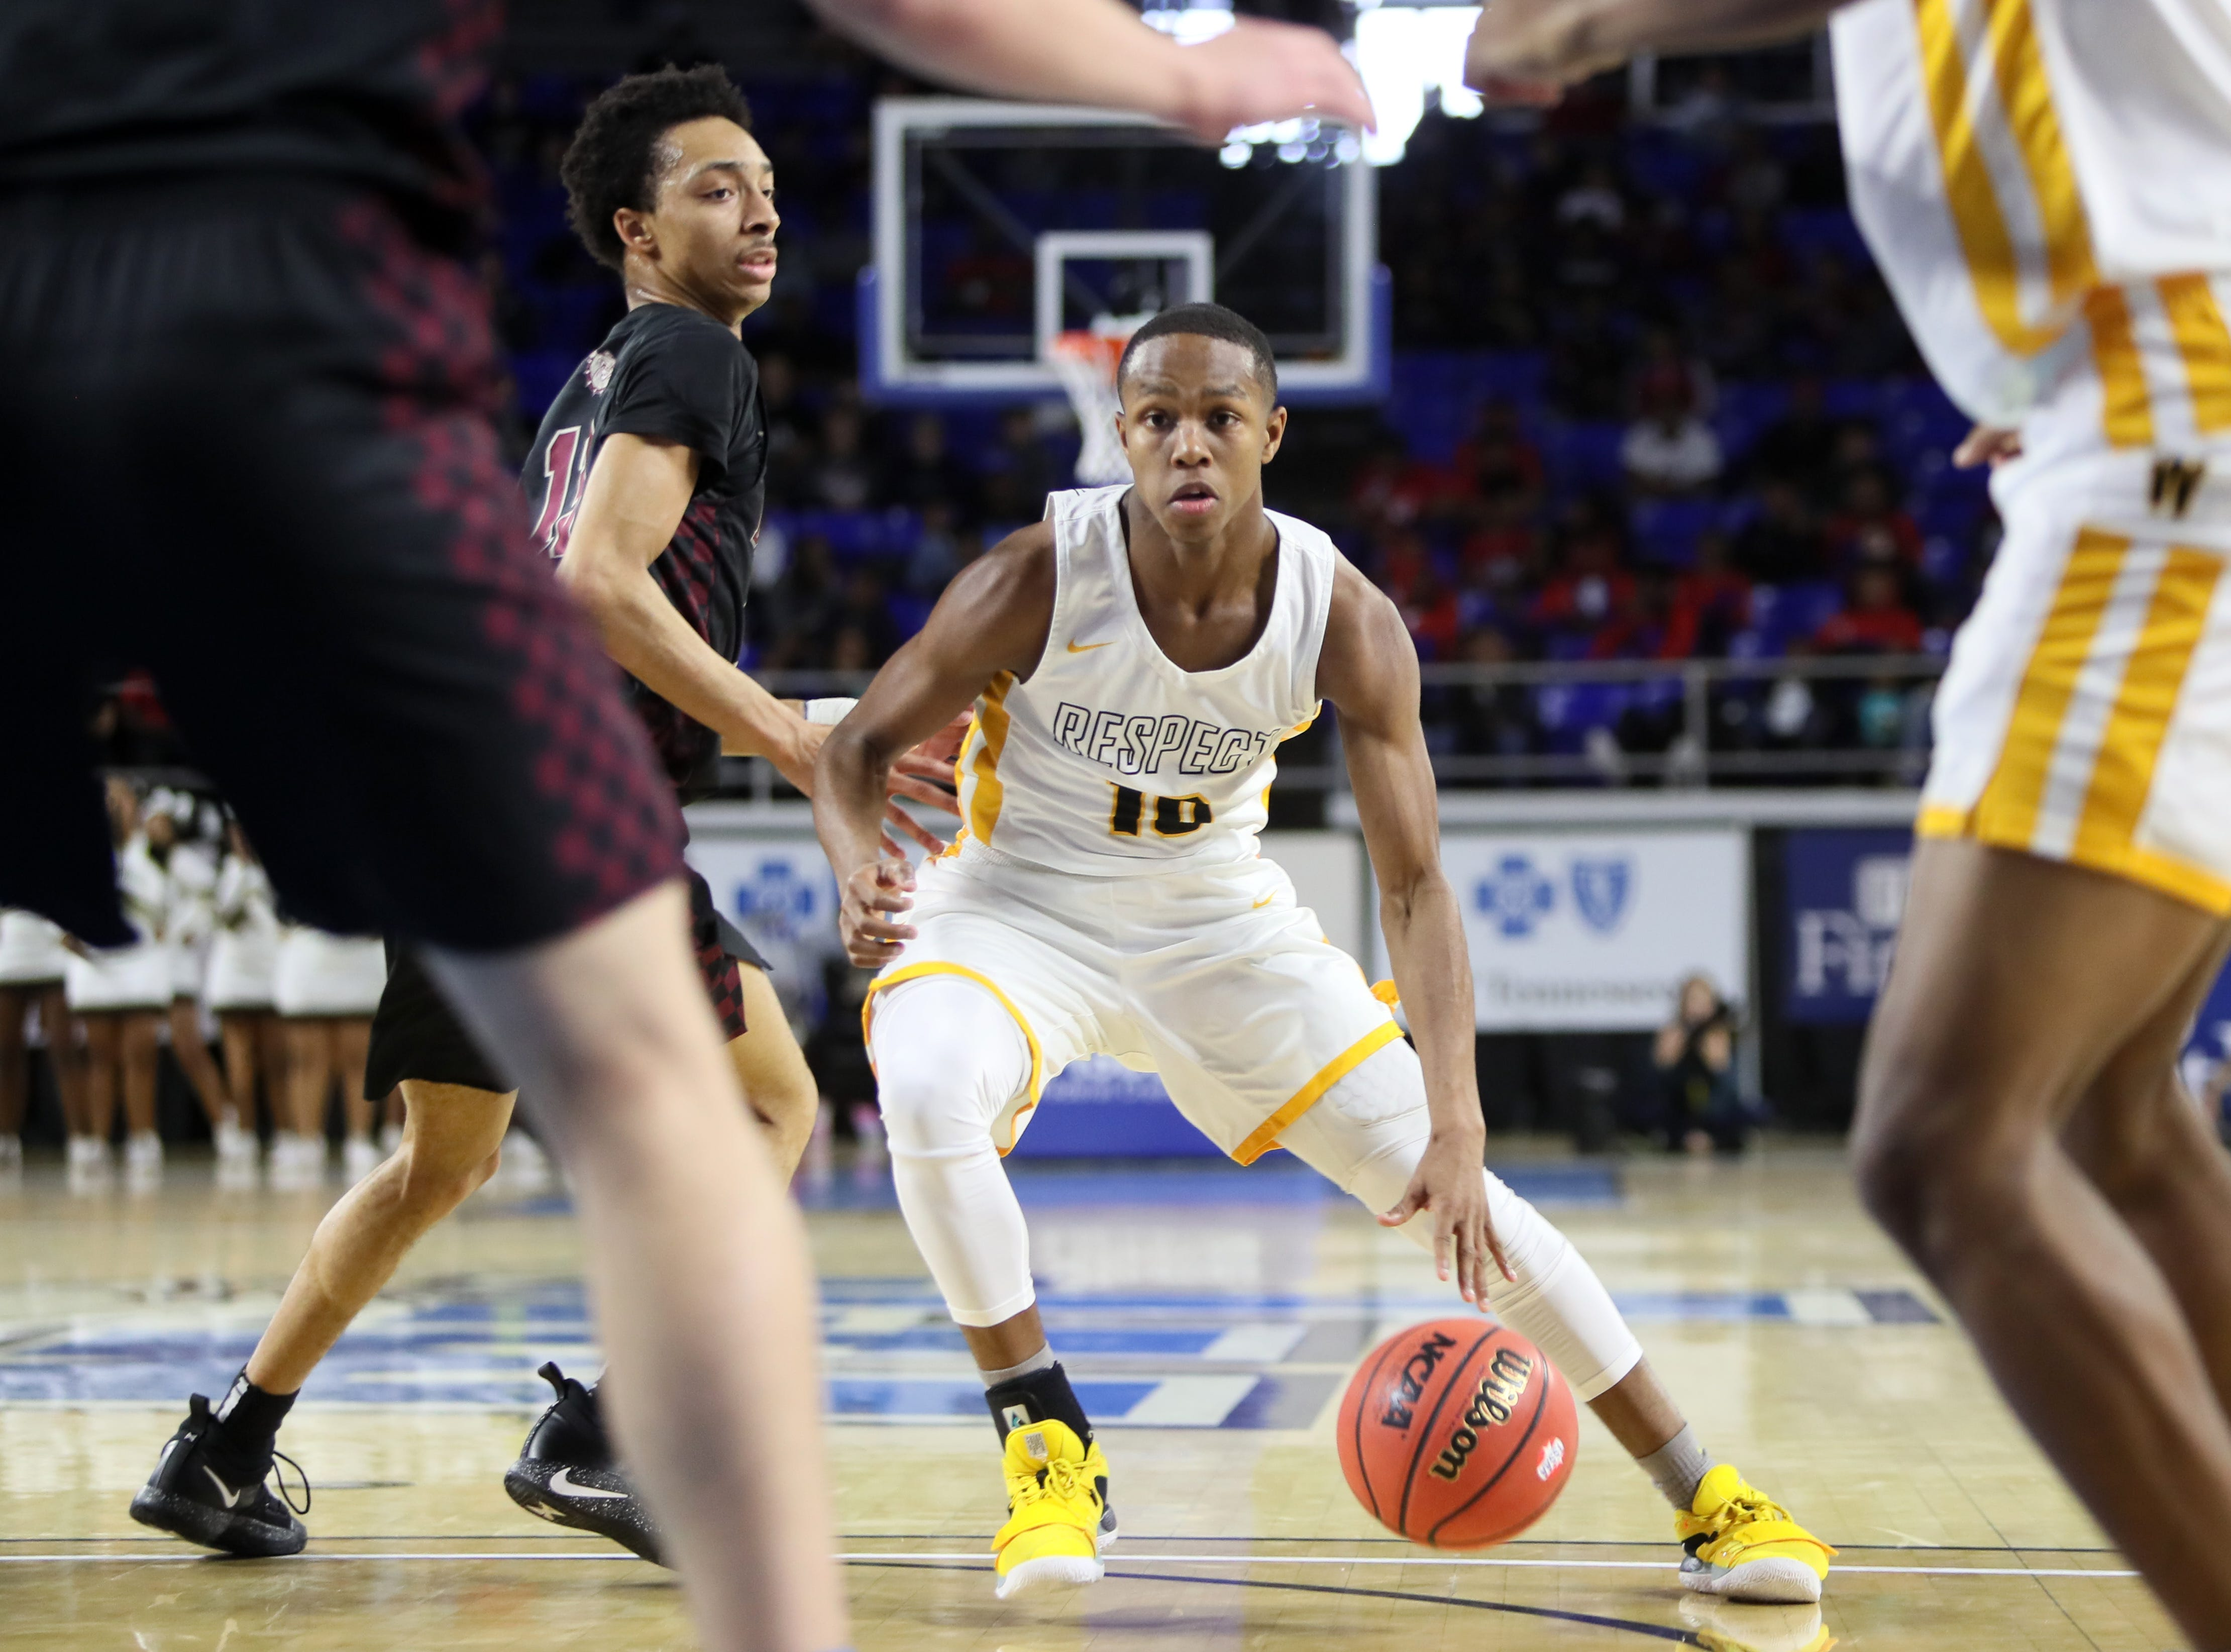 Whitehaven's Antwarn Smith cuts through the defense of Bearden during the Class AAA boys basketball state semifinal at the Murphy Center in Murfreesboro, Tenn. on Thursday, March 14, 2019.